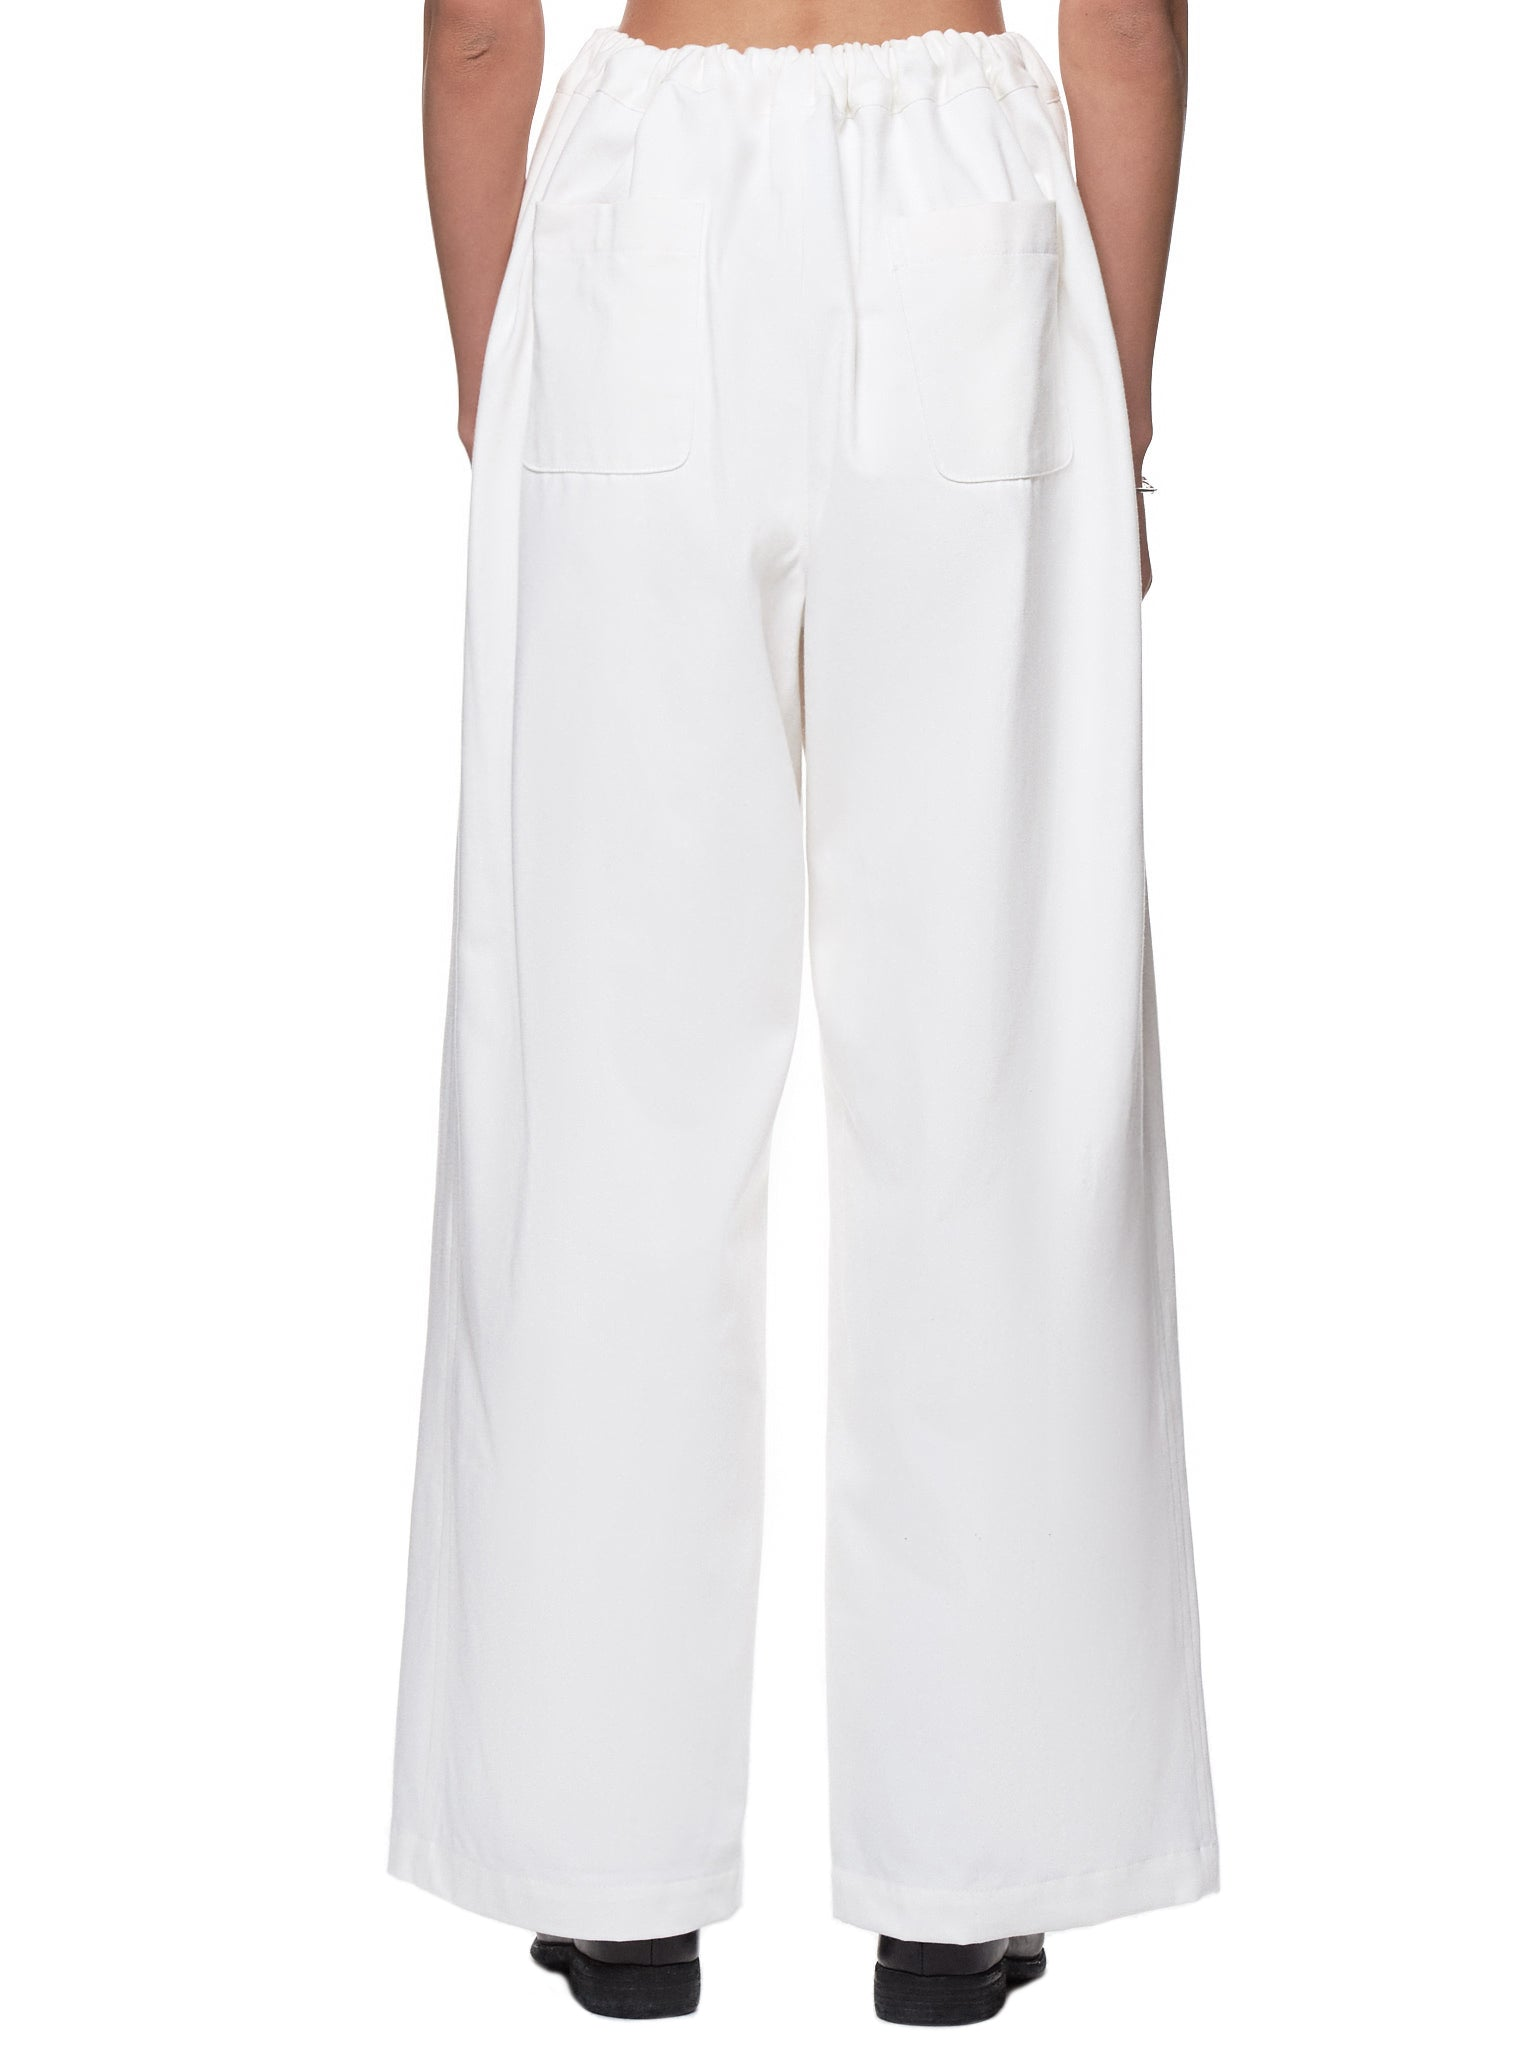 Liroto Trousers - Hlorenzo Back